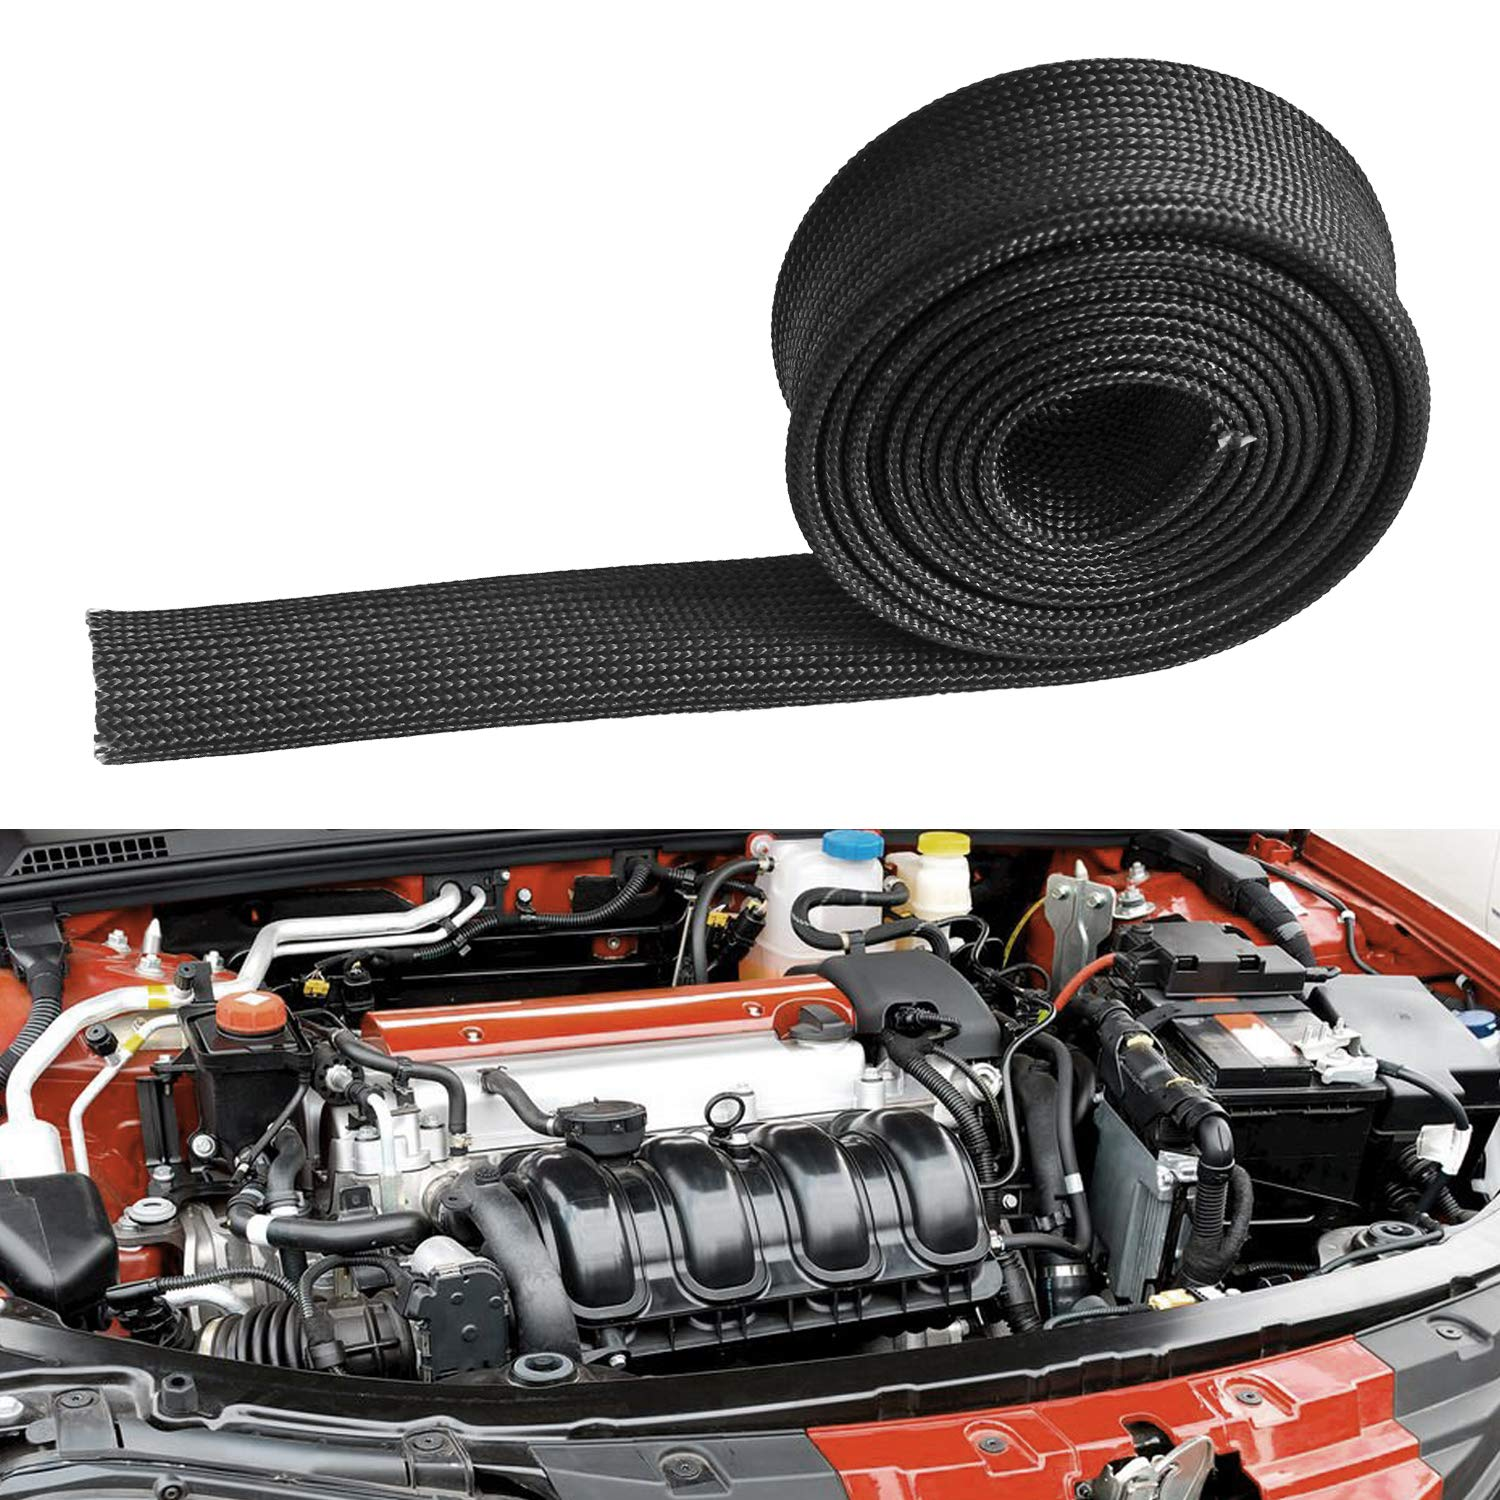 for Car Wire Loom Protection 3//5 Fiberglass Heat Wire Shield Sleeve Adjustable Heat High Temp Shield Black Colour 5FT-16MM